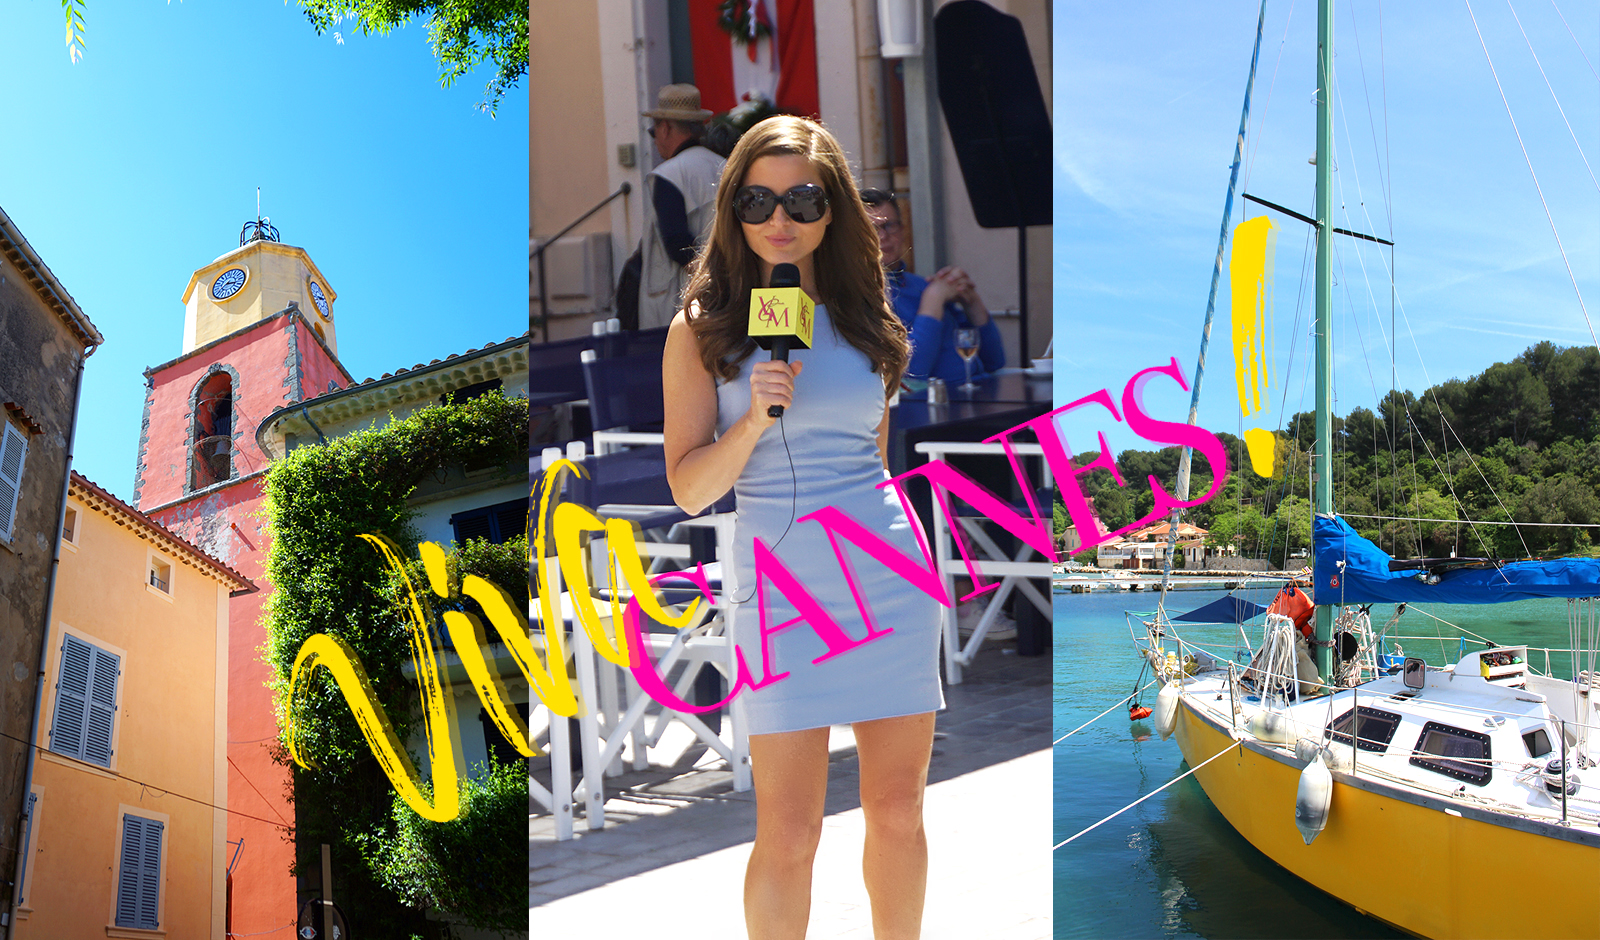 Viva Cannes Episode 7: Off to the Beaches